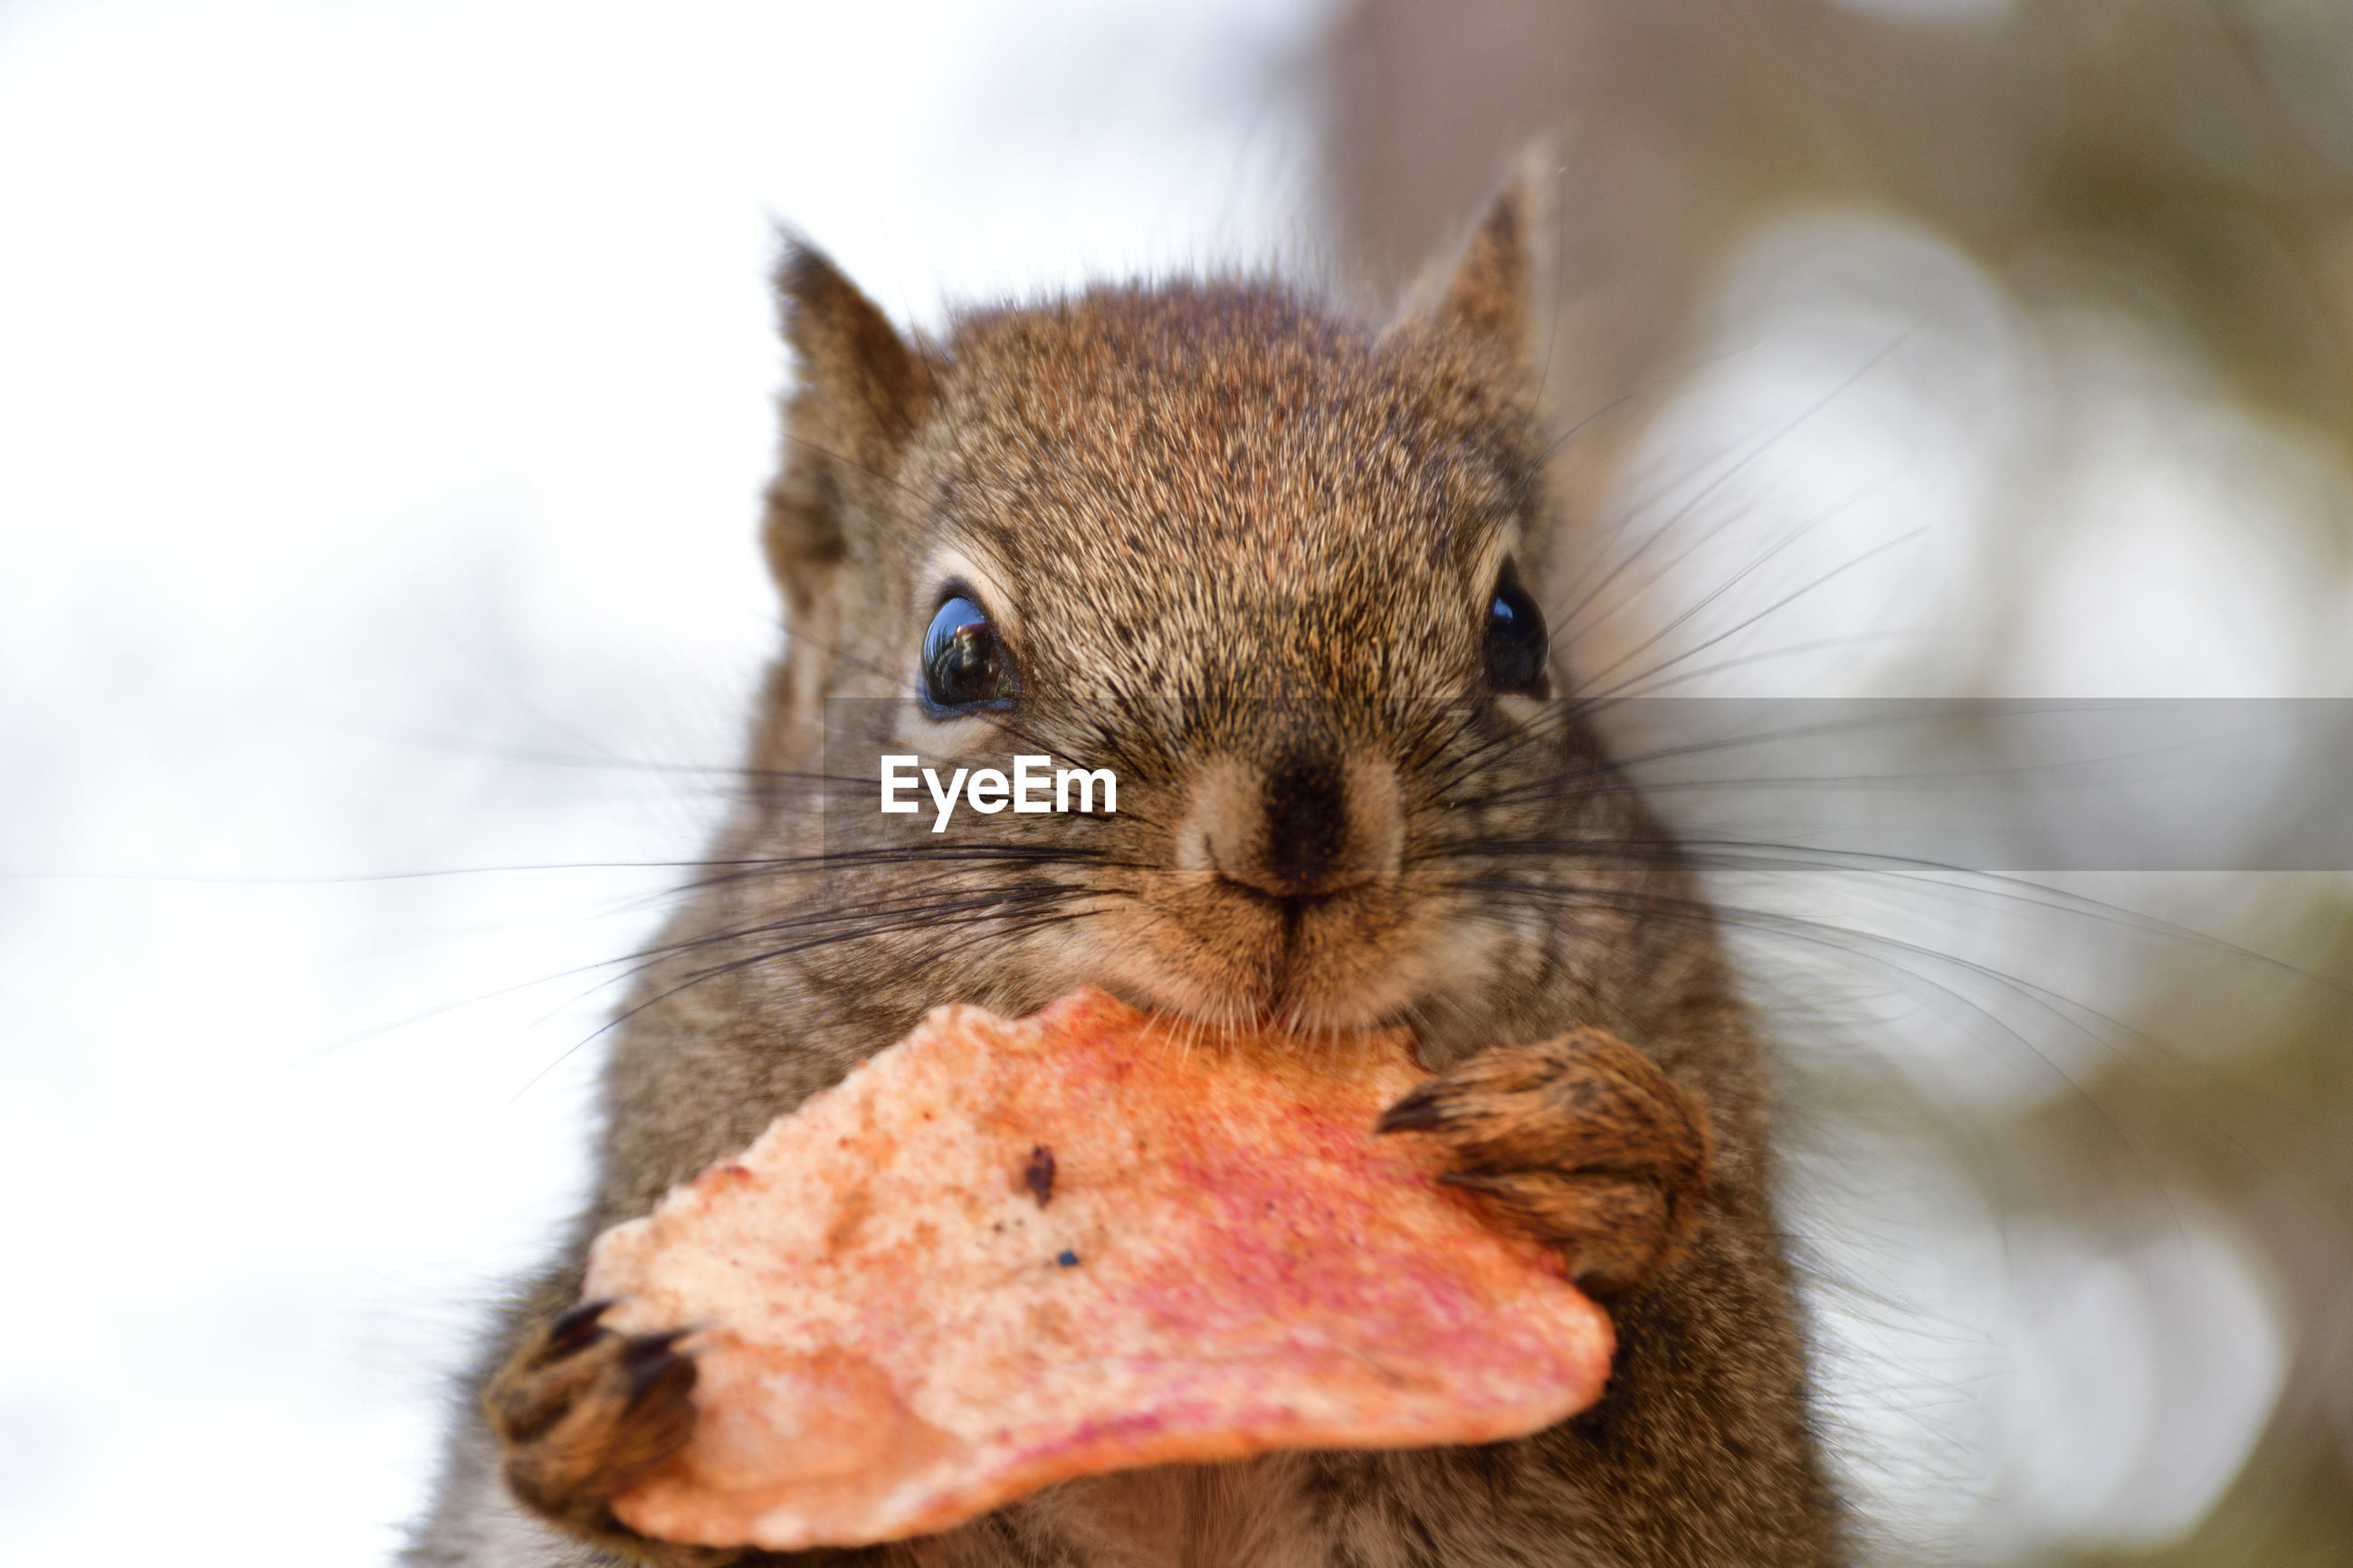 PORTRAIT OF SQUIRREL EATING